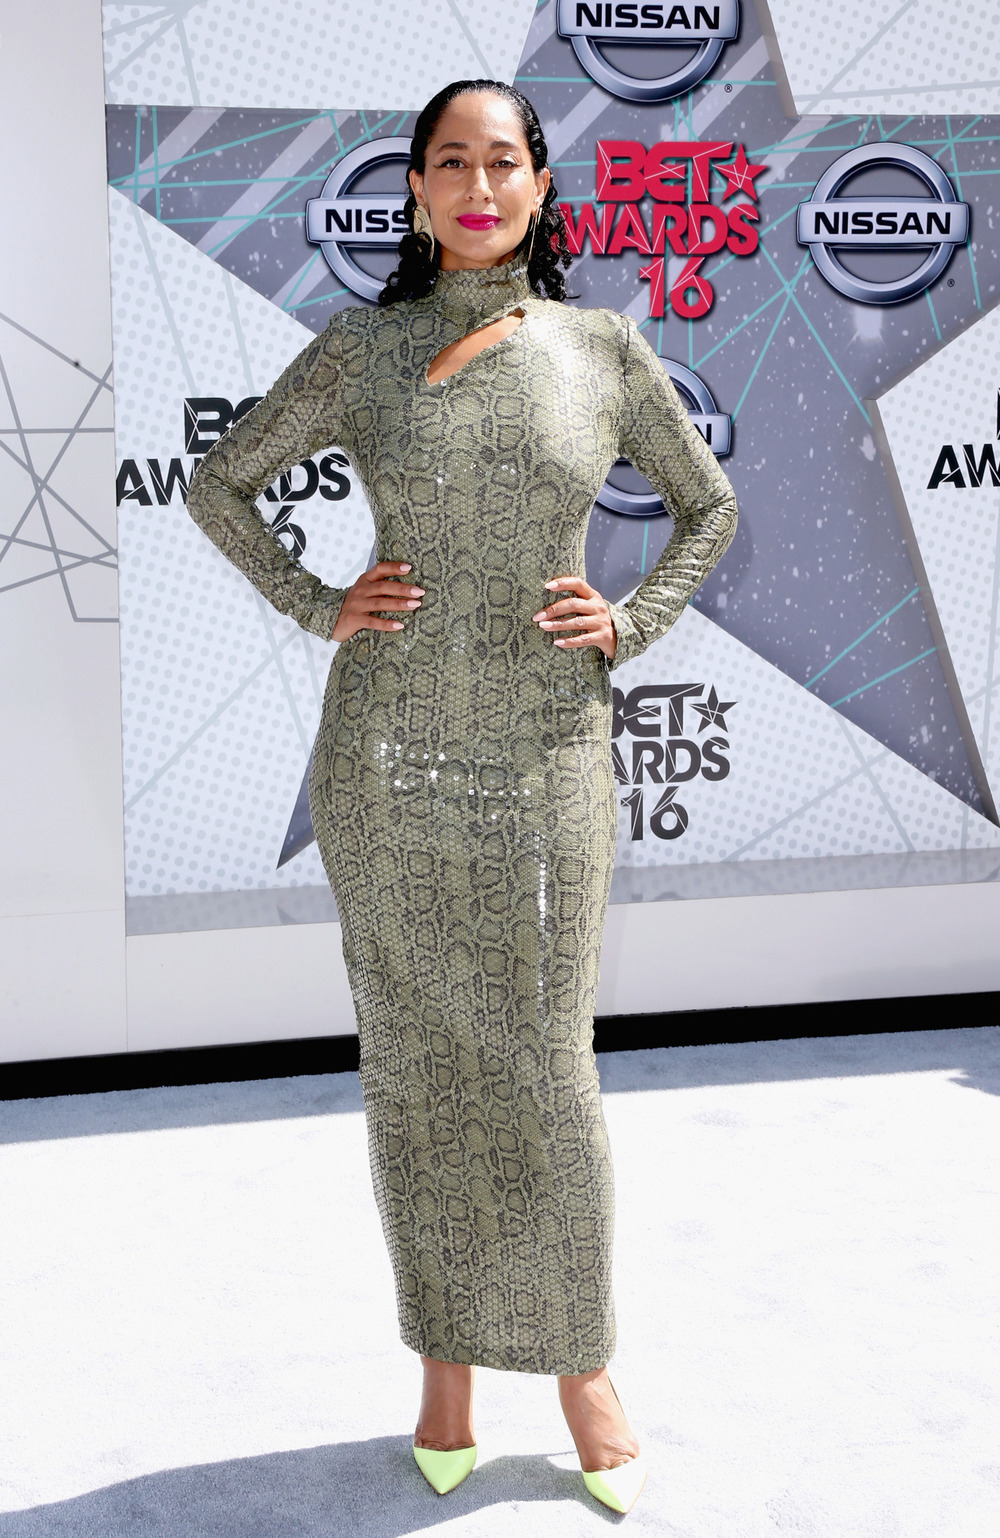 bet-awards-looks-005.nocrop.w1800.h1330.2x.jpg